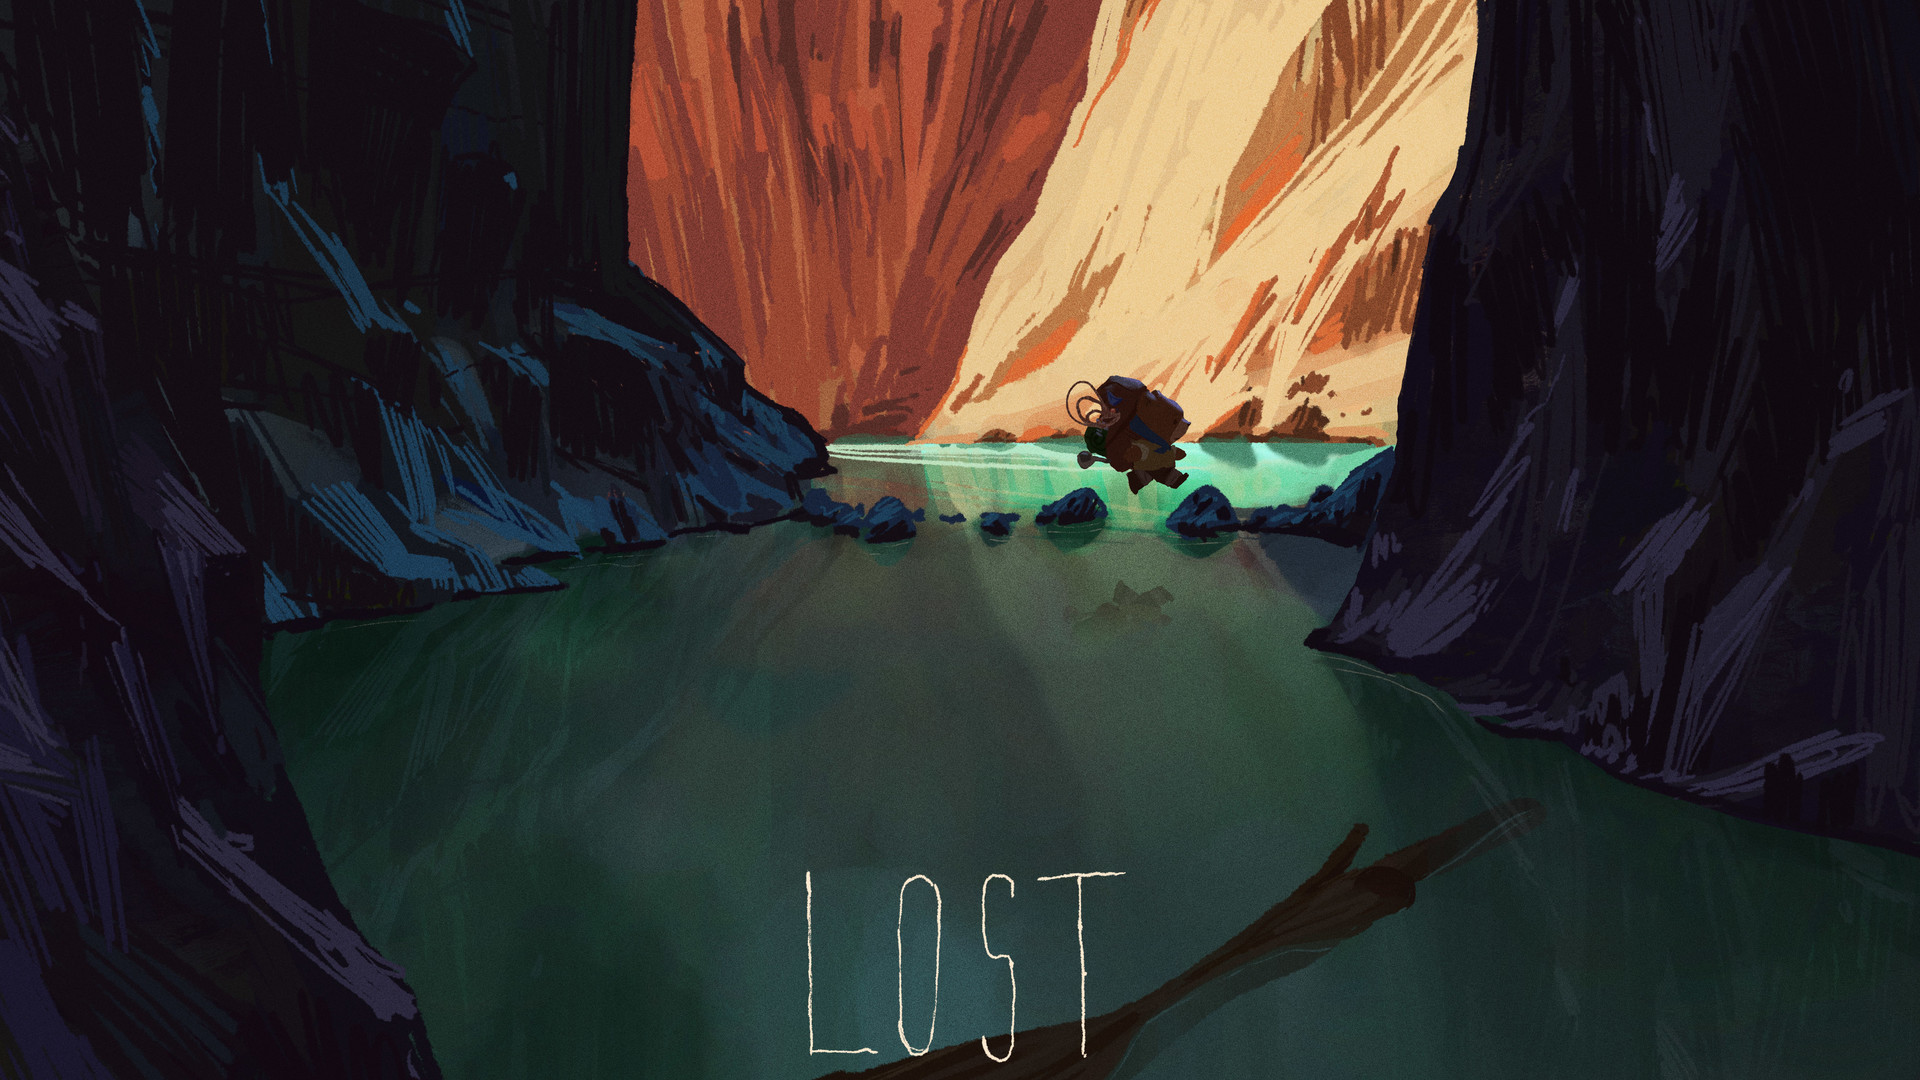 mike redman digital painting illustration Lost 3